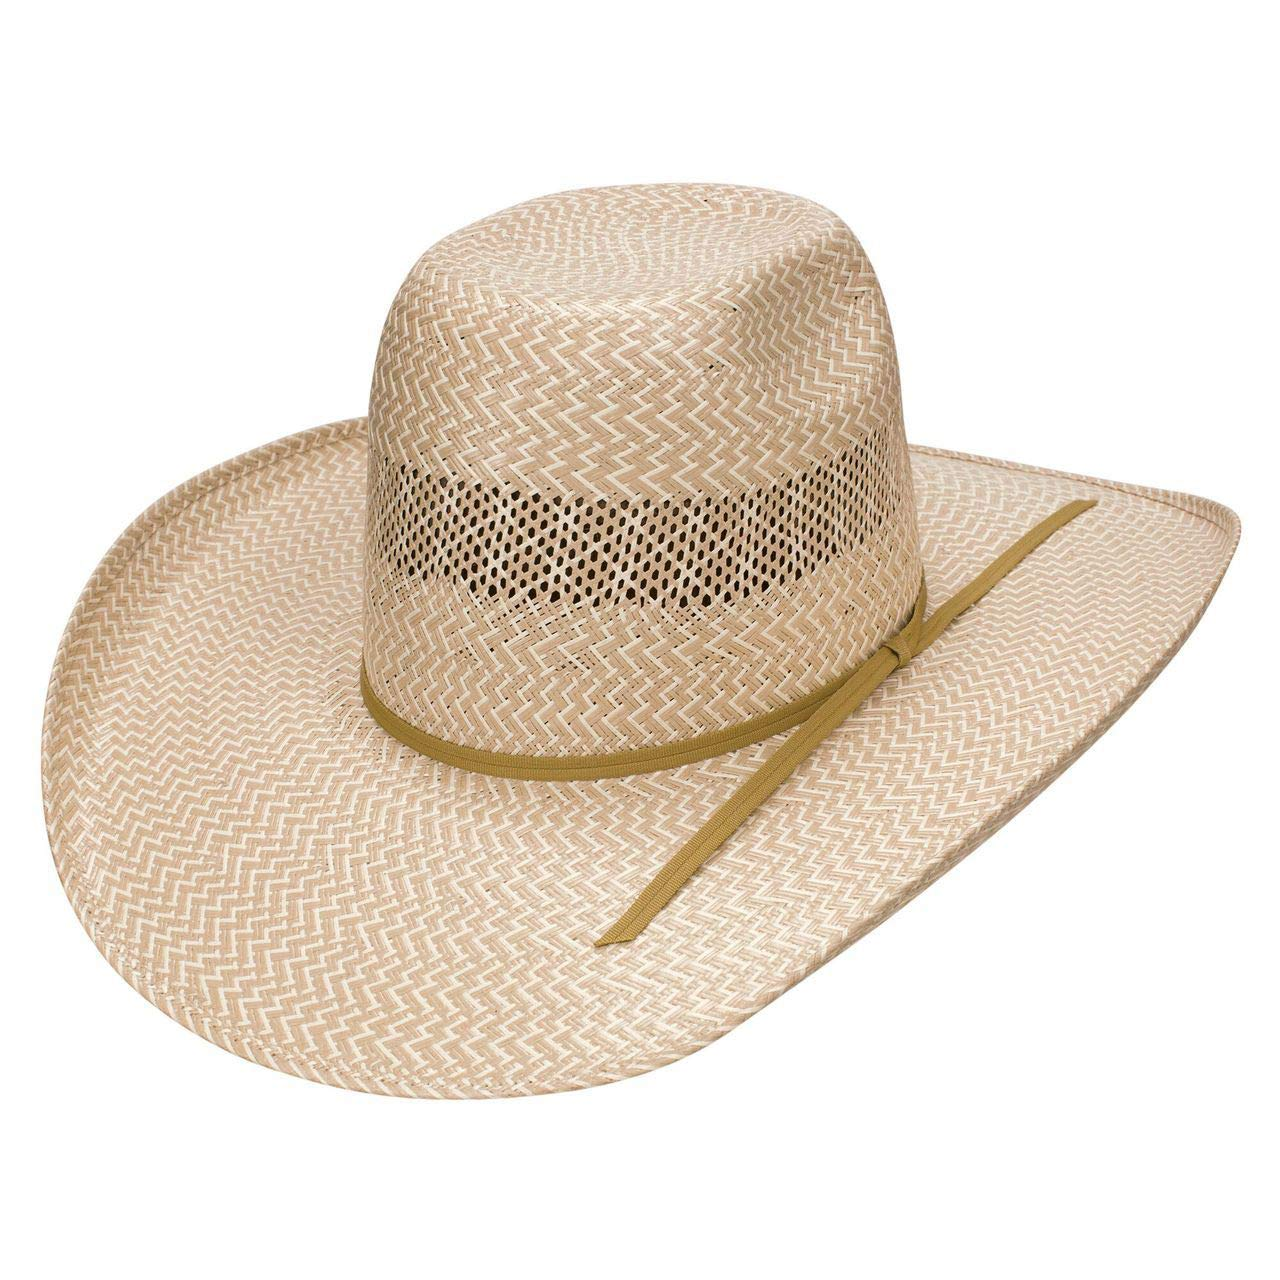 Resistol 7X Dove Valley Straw Hat 7.38